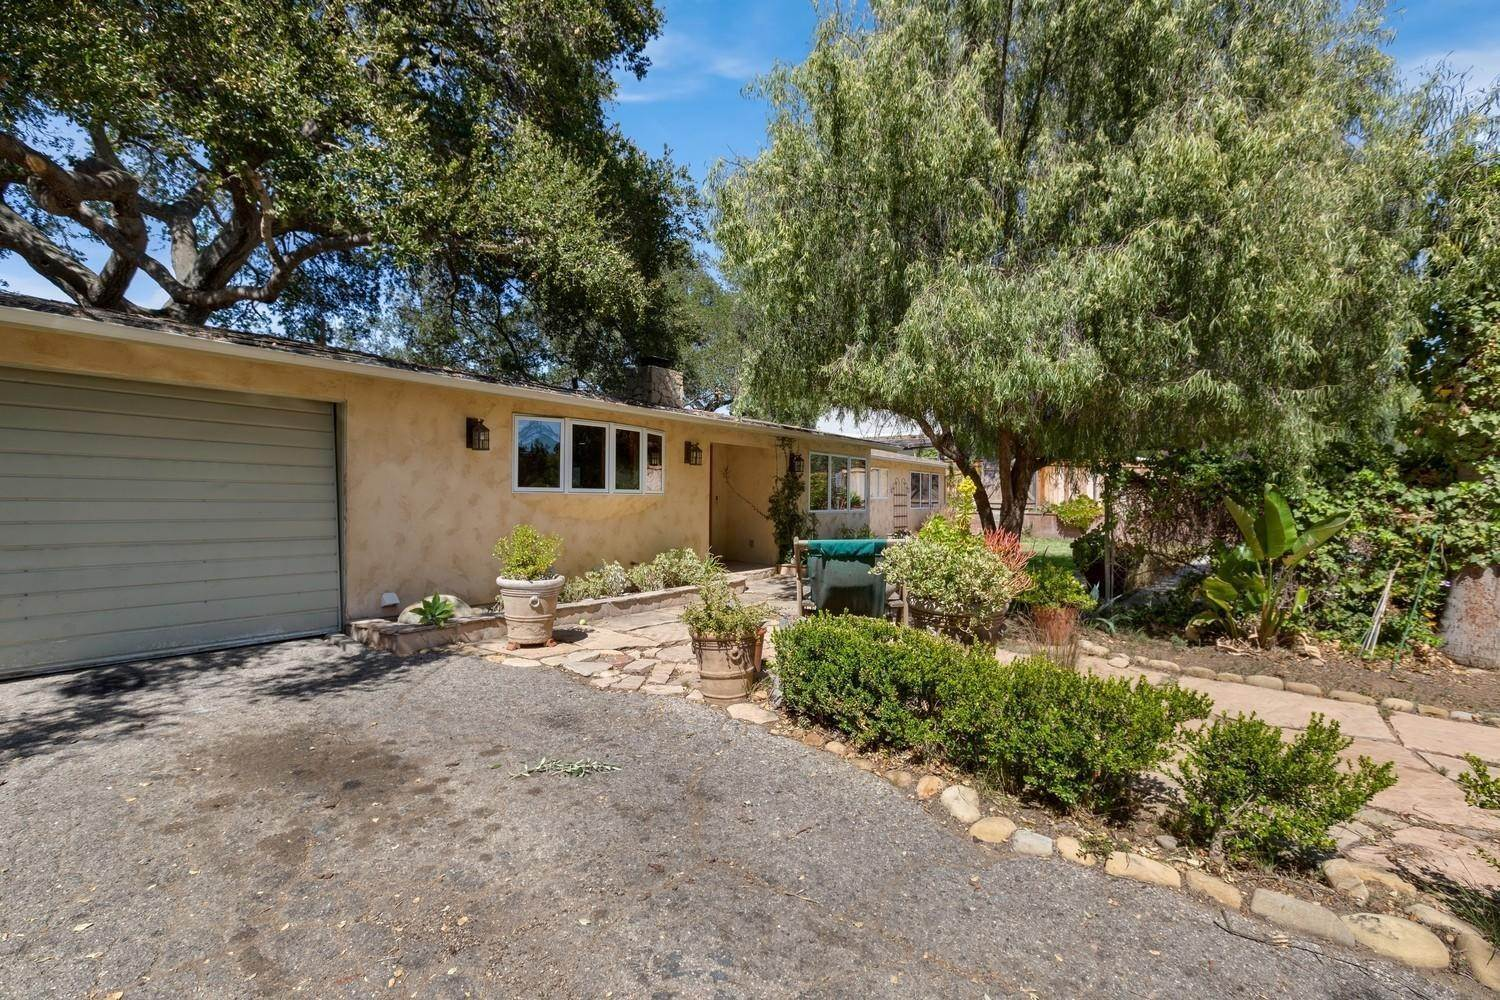 23. Single Family Homes for Sale at 170 Brandt Avenue Oak View, California 93022 United States